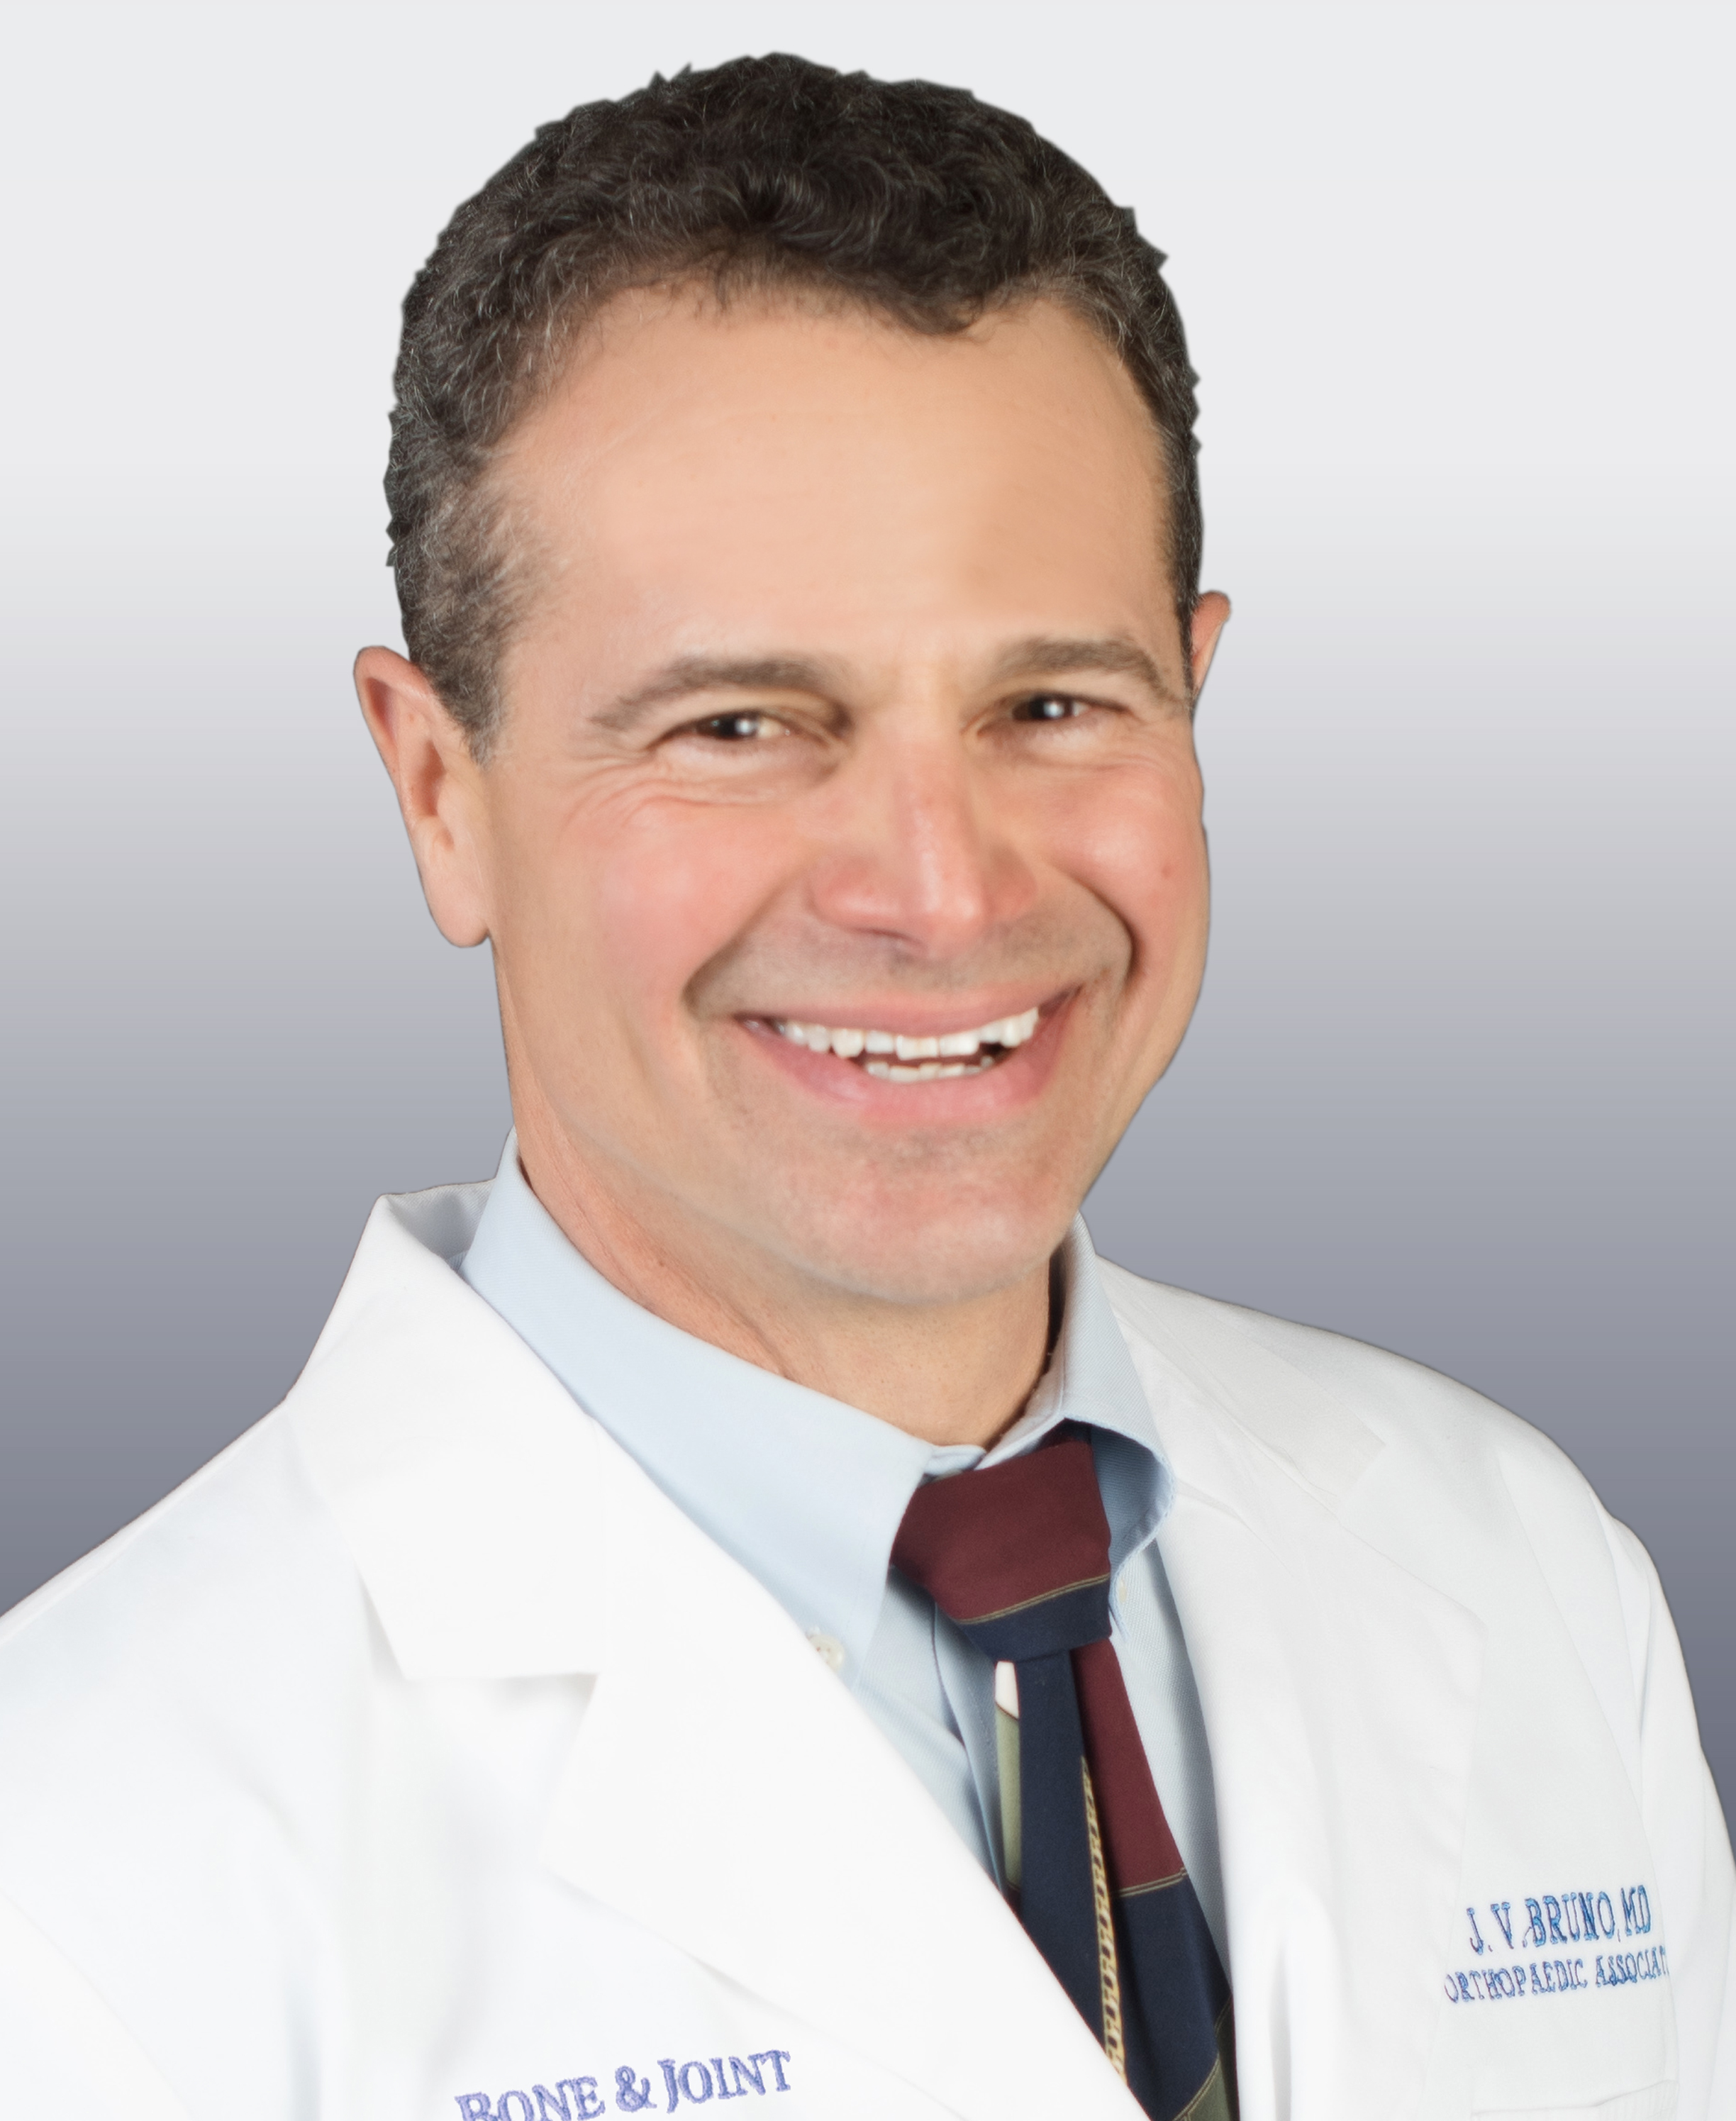 James V. Bruno, MD